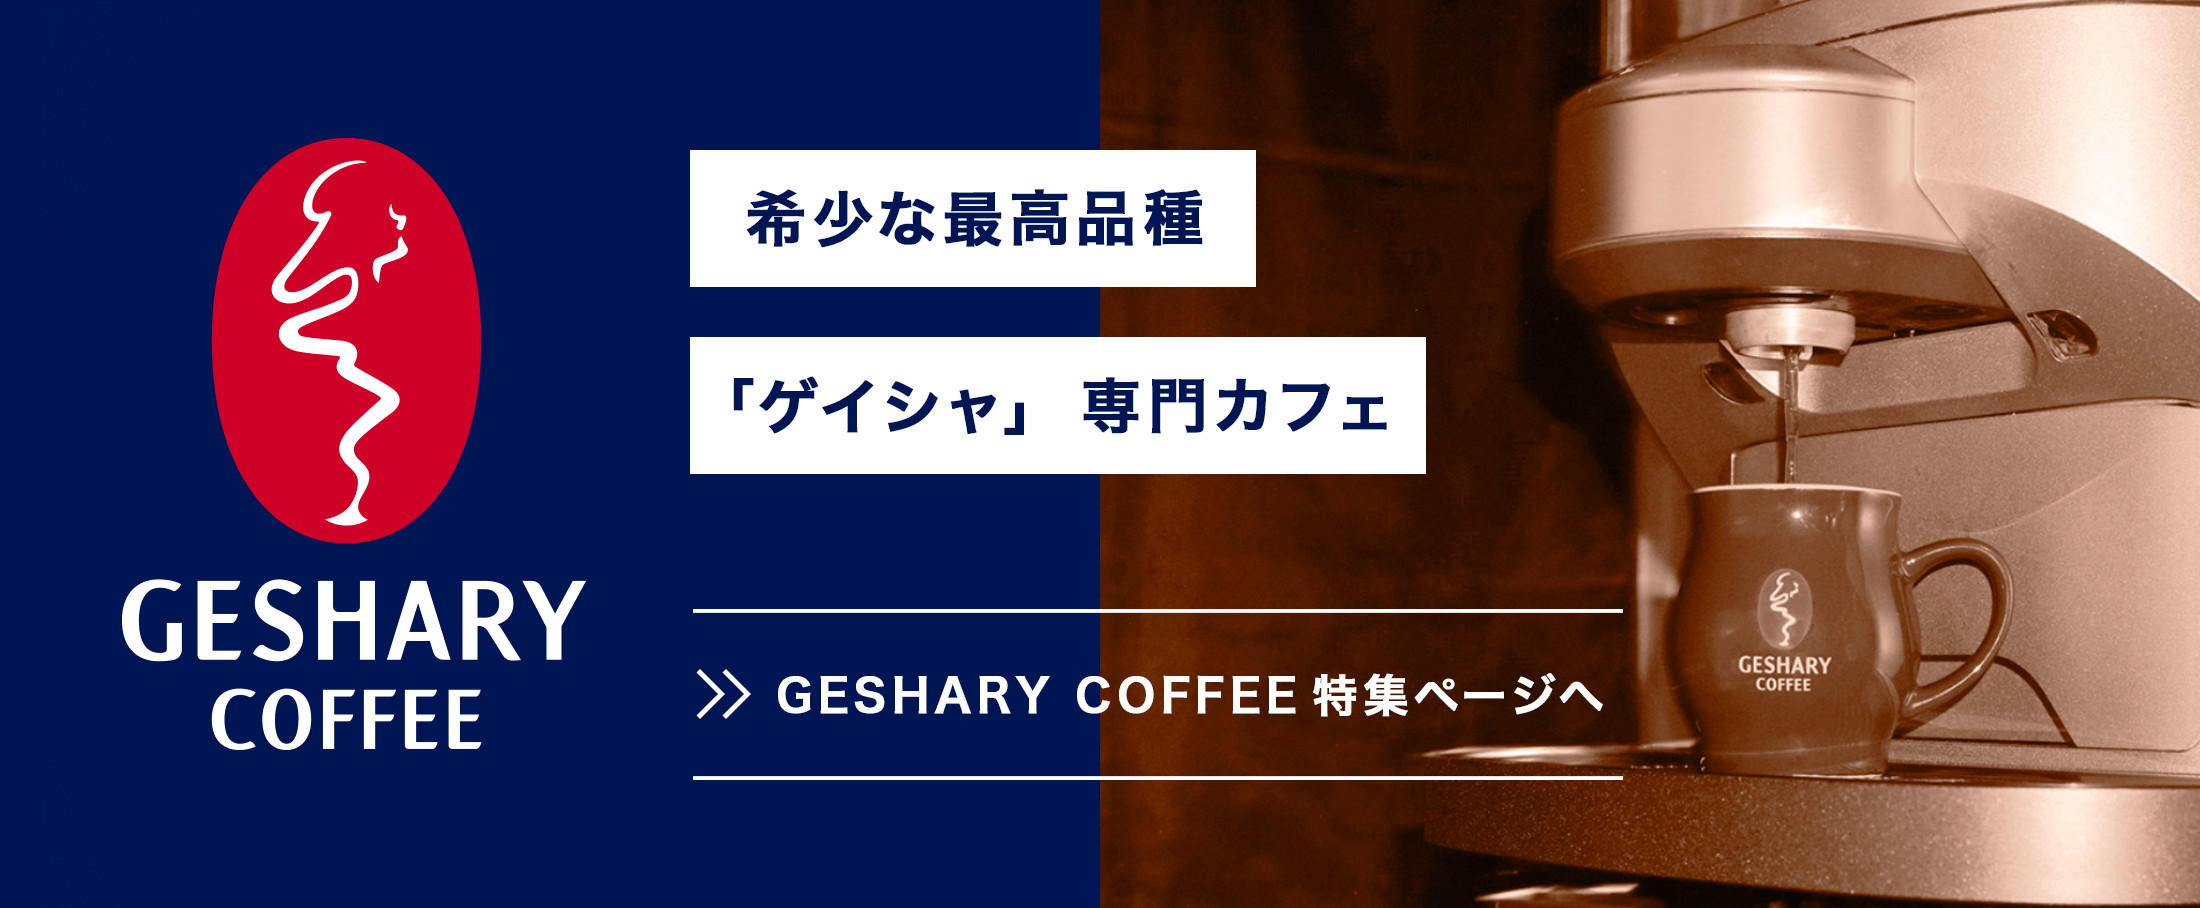 GESHARY COFFEE